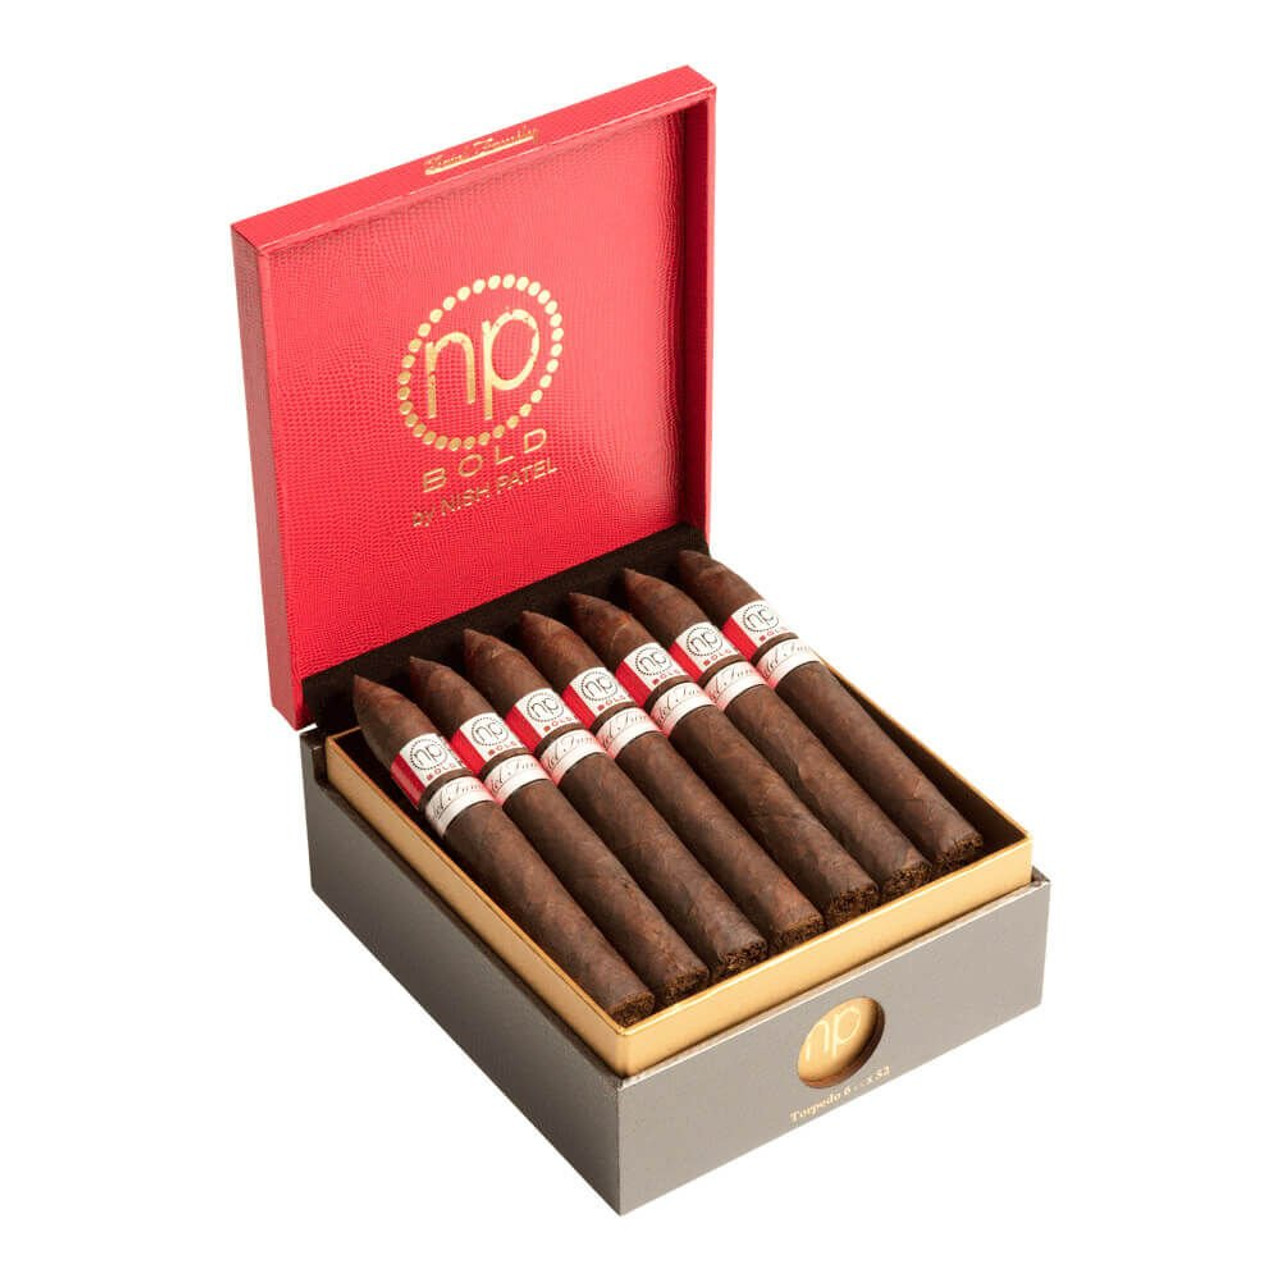 Bold by Nish Sixty Cigars - 6 x 60 (Box of 21)